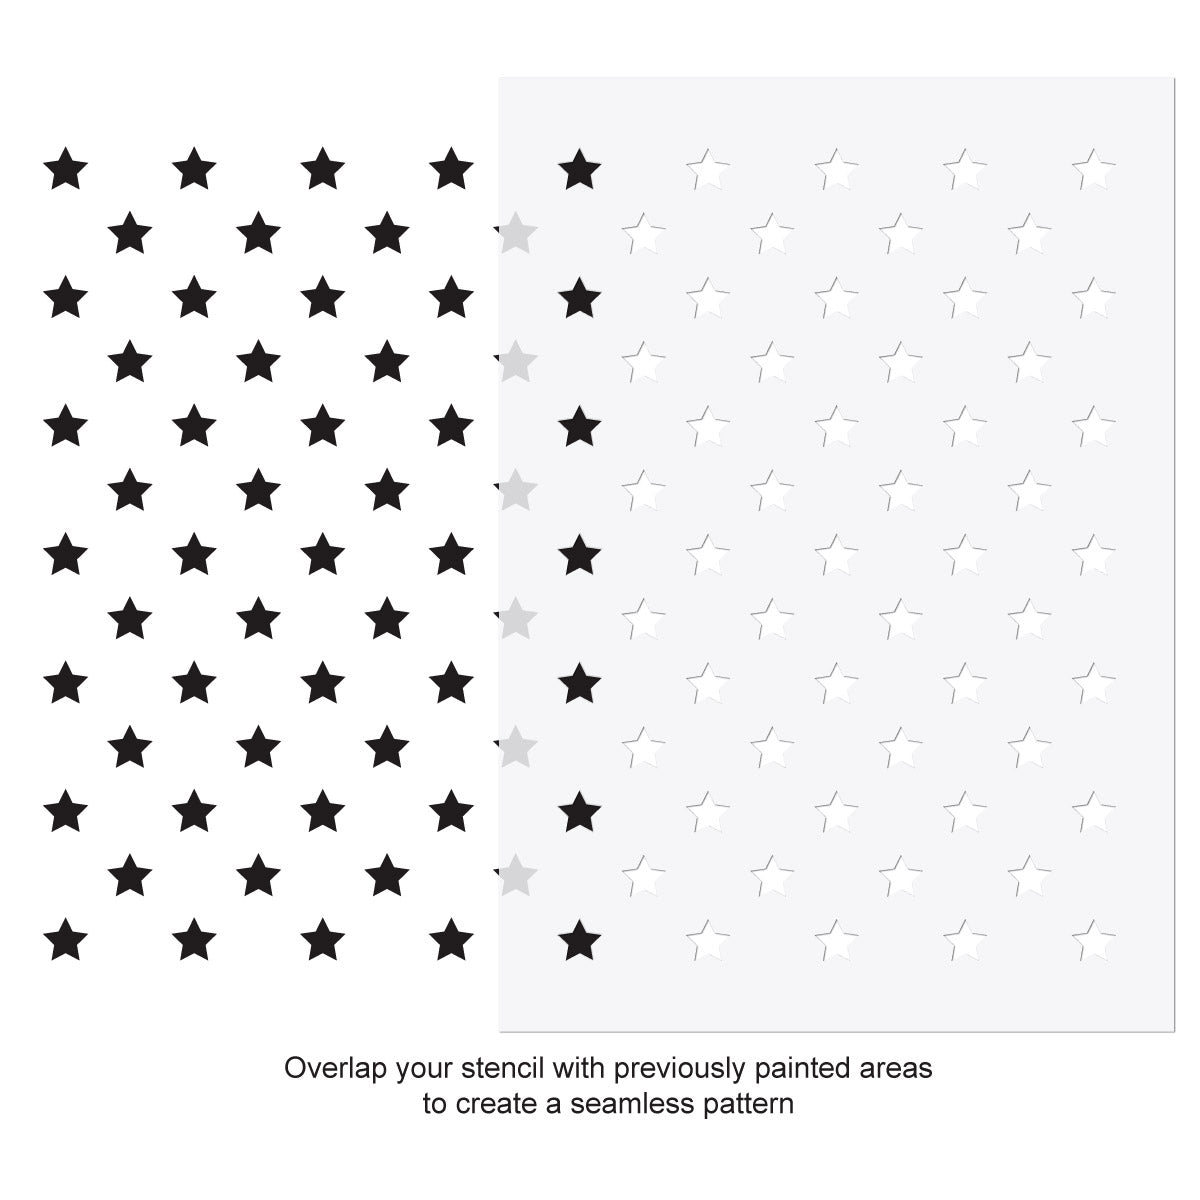 CraftStar Mini Stars Stencil Use Guide